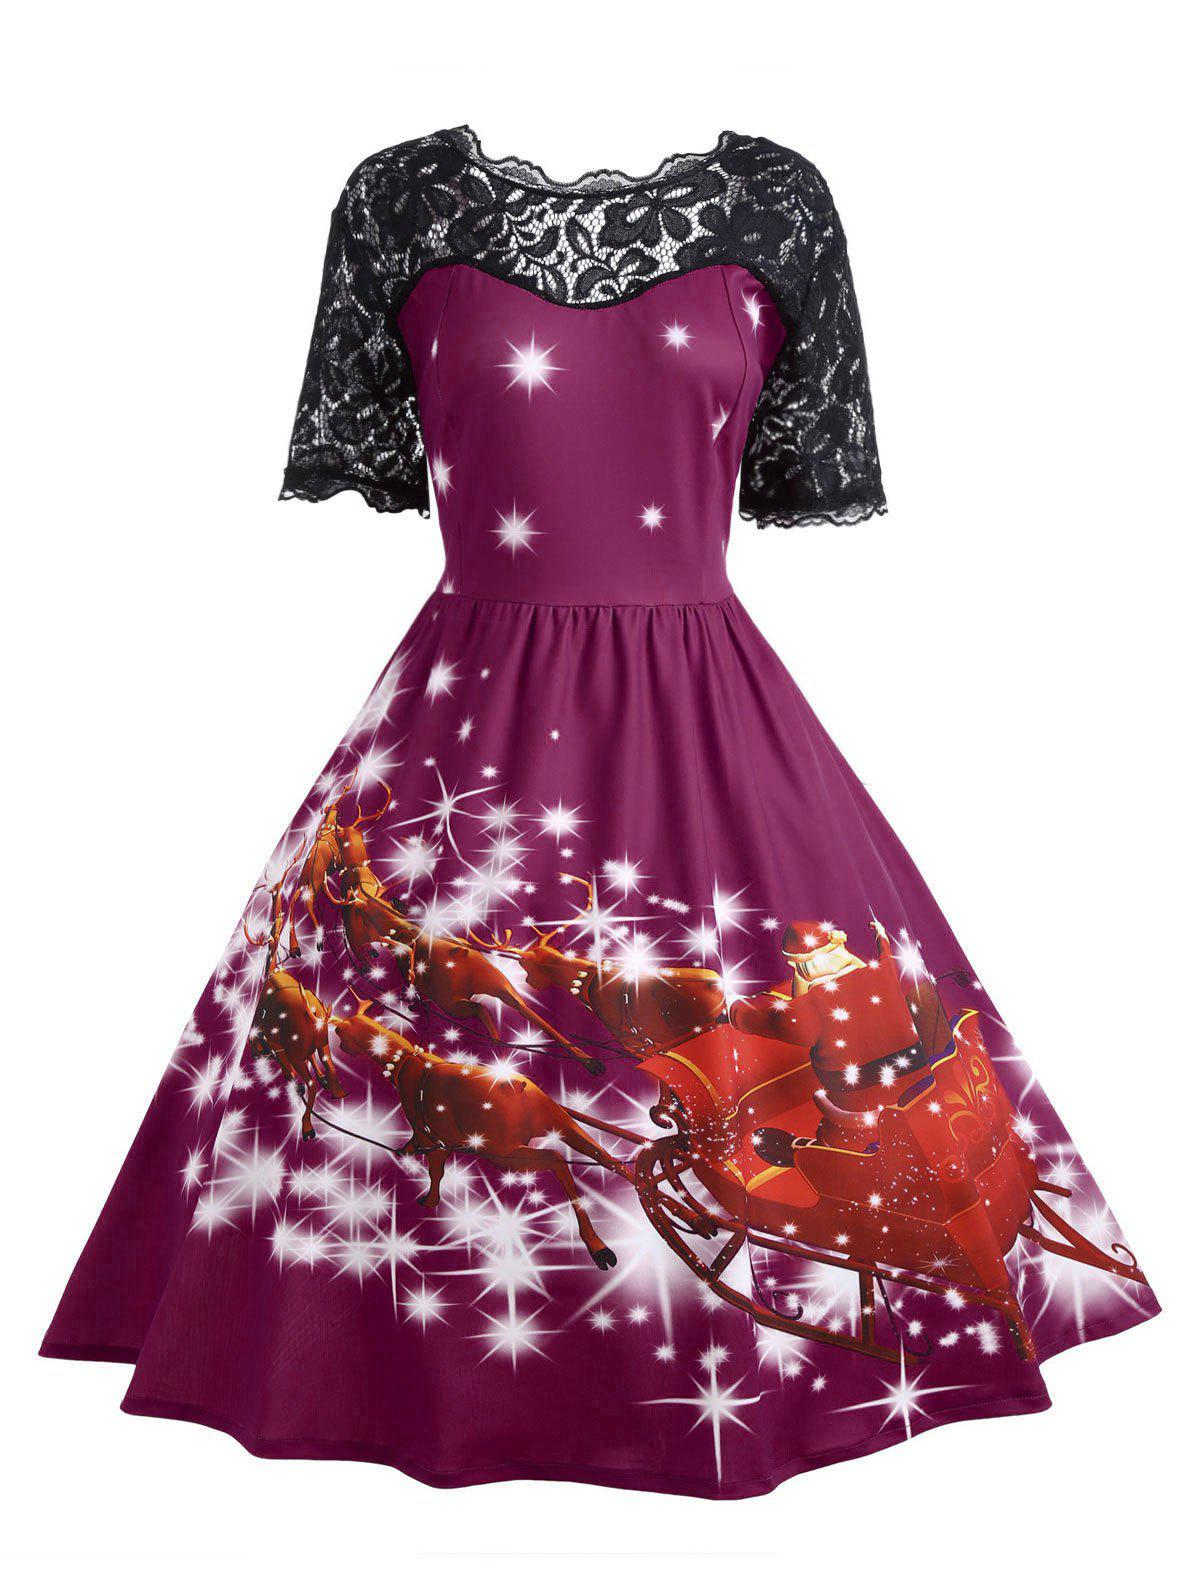 Plus Size Lace Panel Midi Father Christmas Party DressWOMEN<br><br>Size: XL; Color: PURPLISH RED; Style: Cute; Material: Cotton Blend,Polyester; Silhouette: Ball Gown; Dresses Length: Mid-Calf; Neckline: Scoop Neck; Sleeve Length: Short Sleeves; Embellishment: Hollow Out,Lace,Vintage; Pattern Type: Animal,Character,Print,Star; With Belt: No; Season: Fall,Winter; Weight: 0.4700kg; Package Contents: 1 x Dress;